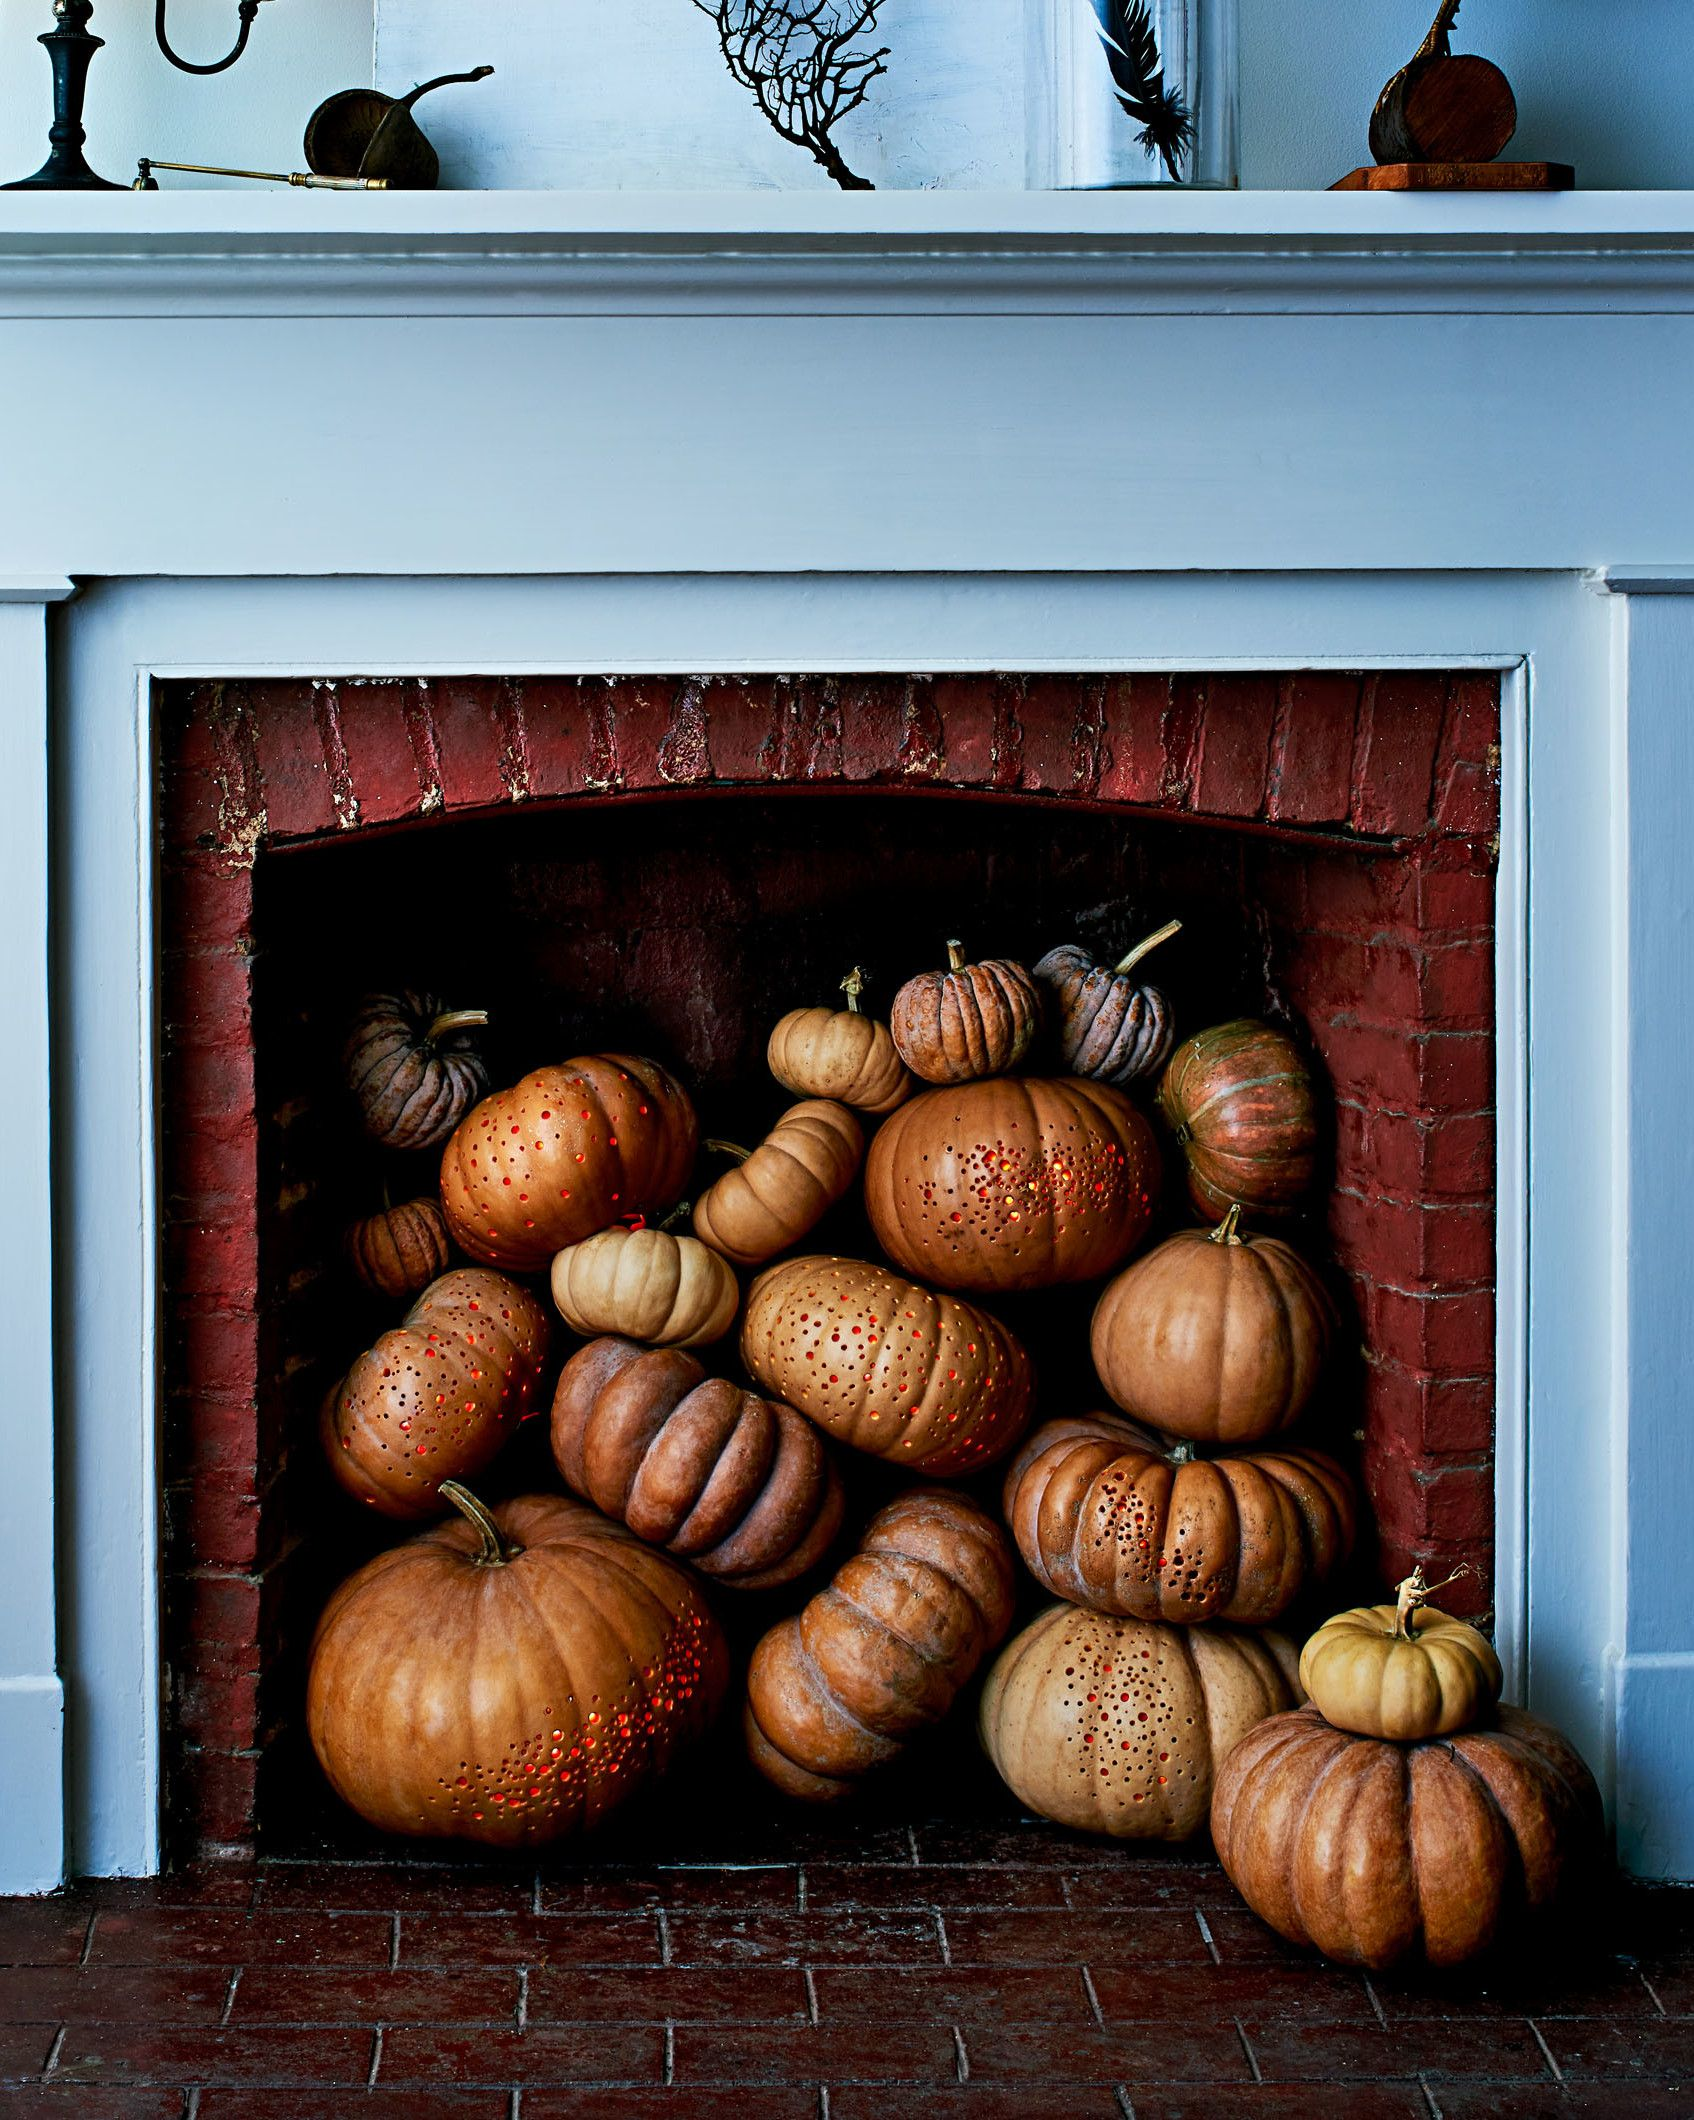 31 of Our Best Pumpkin Carving and Decorating Ideas With